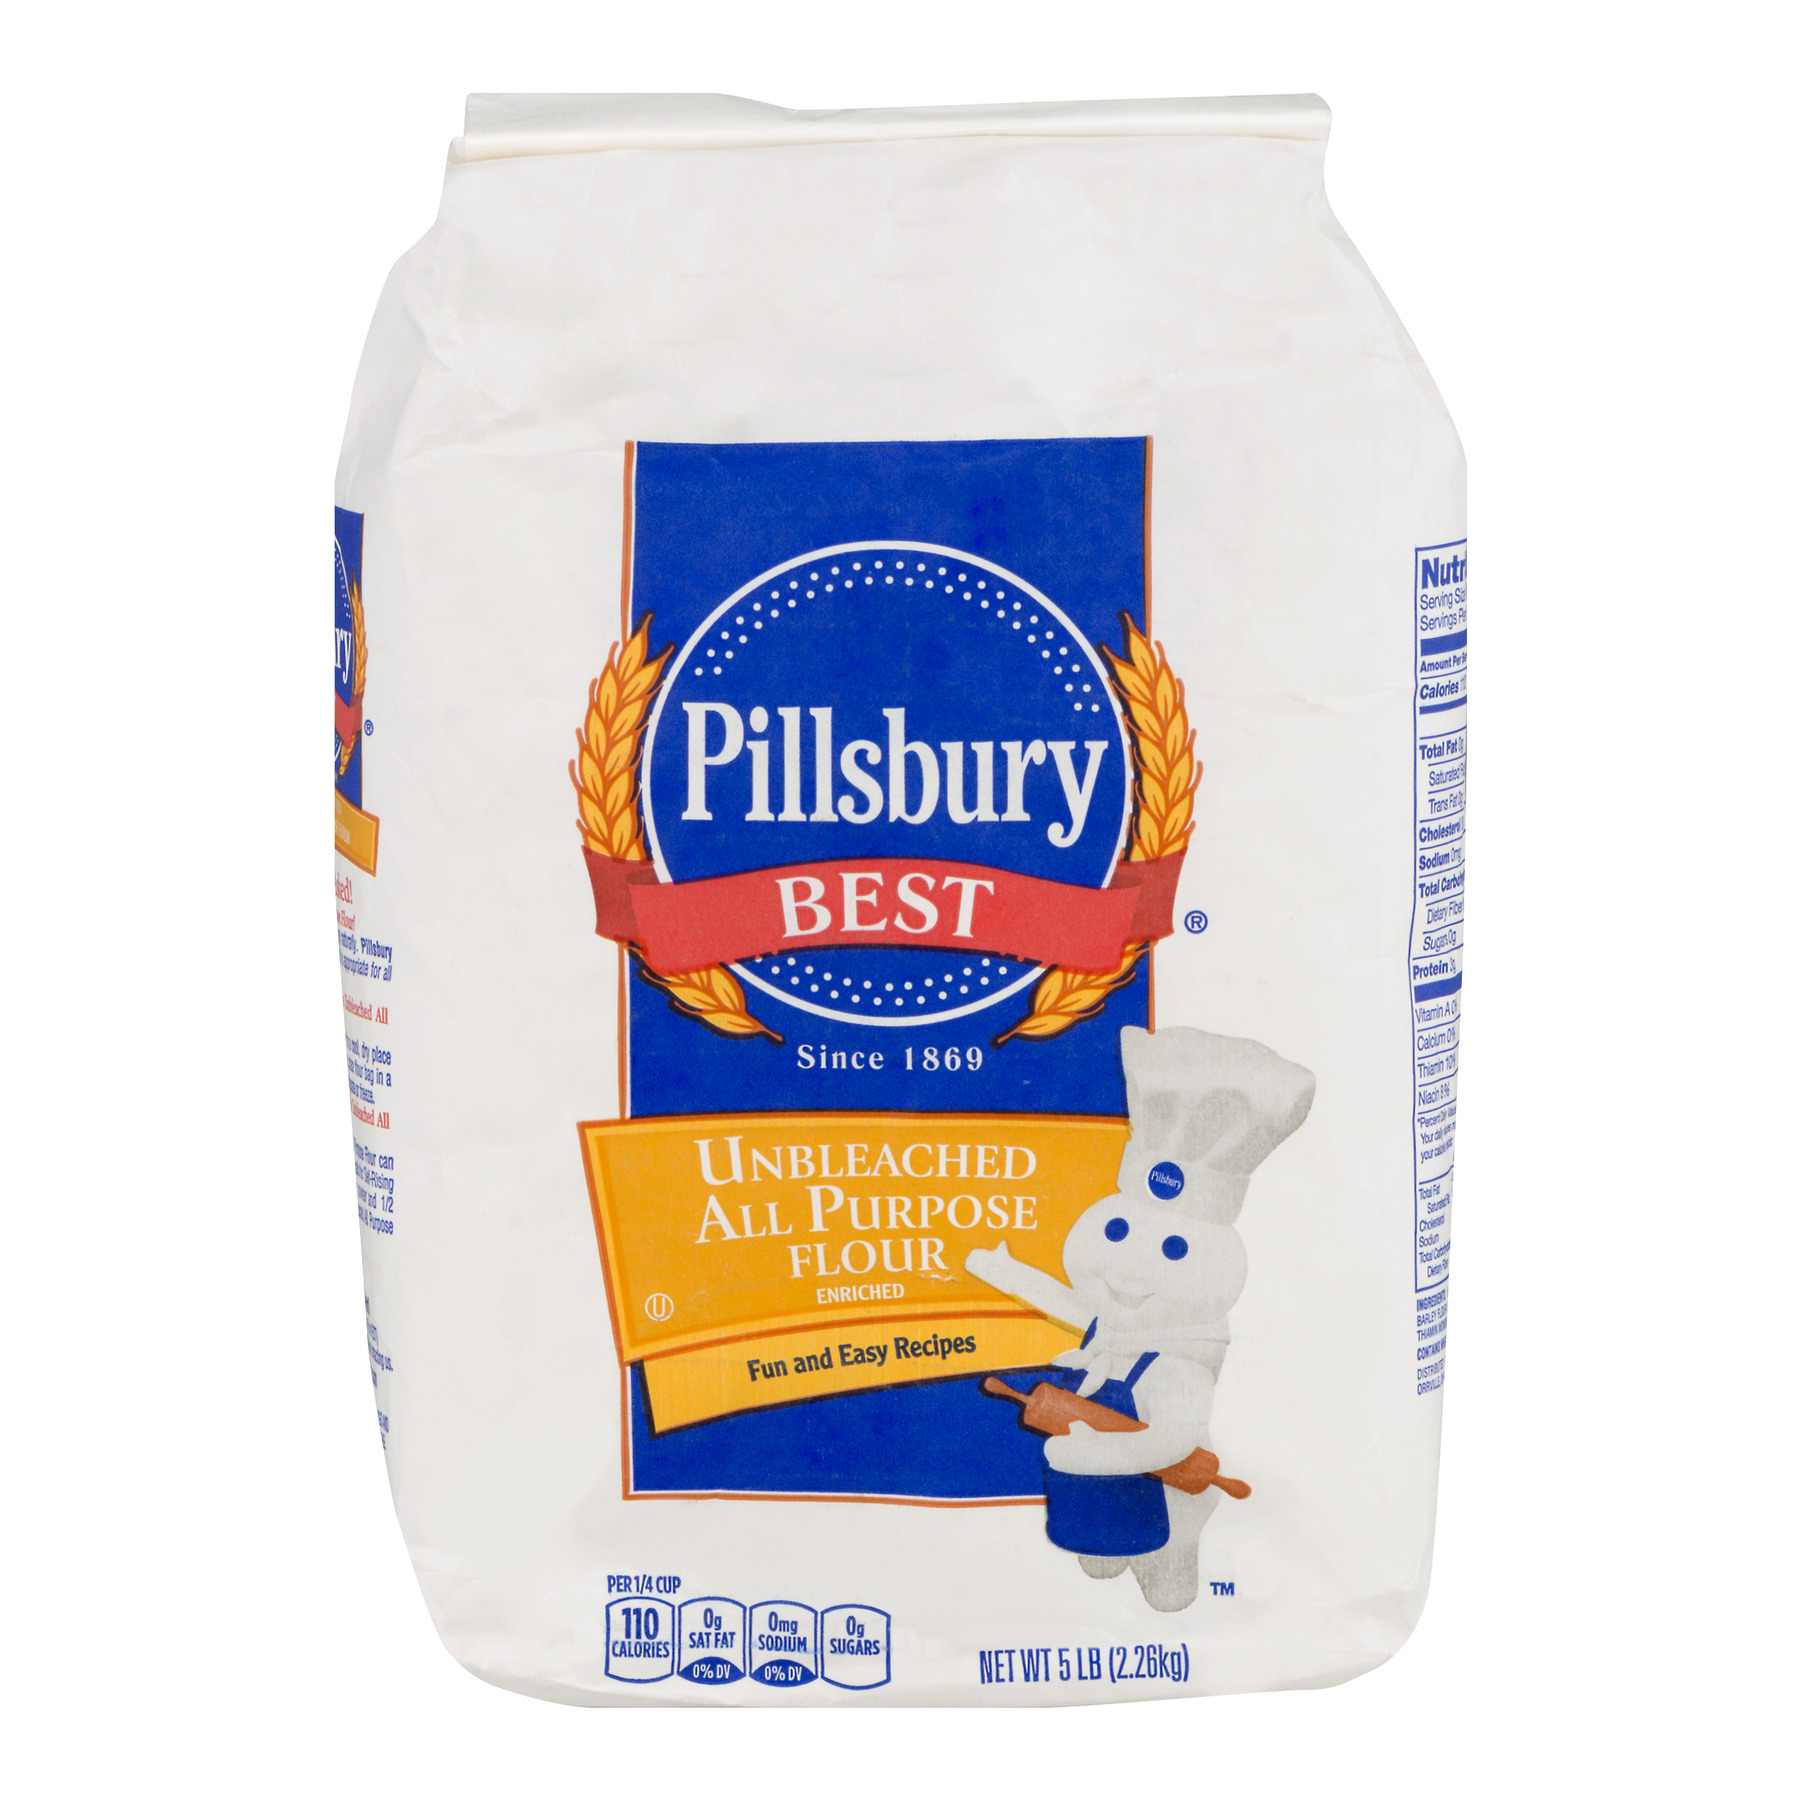 Pillsbury Best Unbleached All Purpose Flour, 5.0 LB